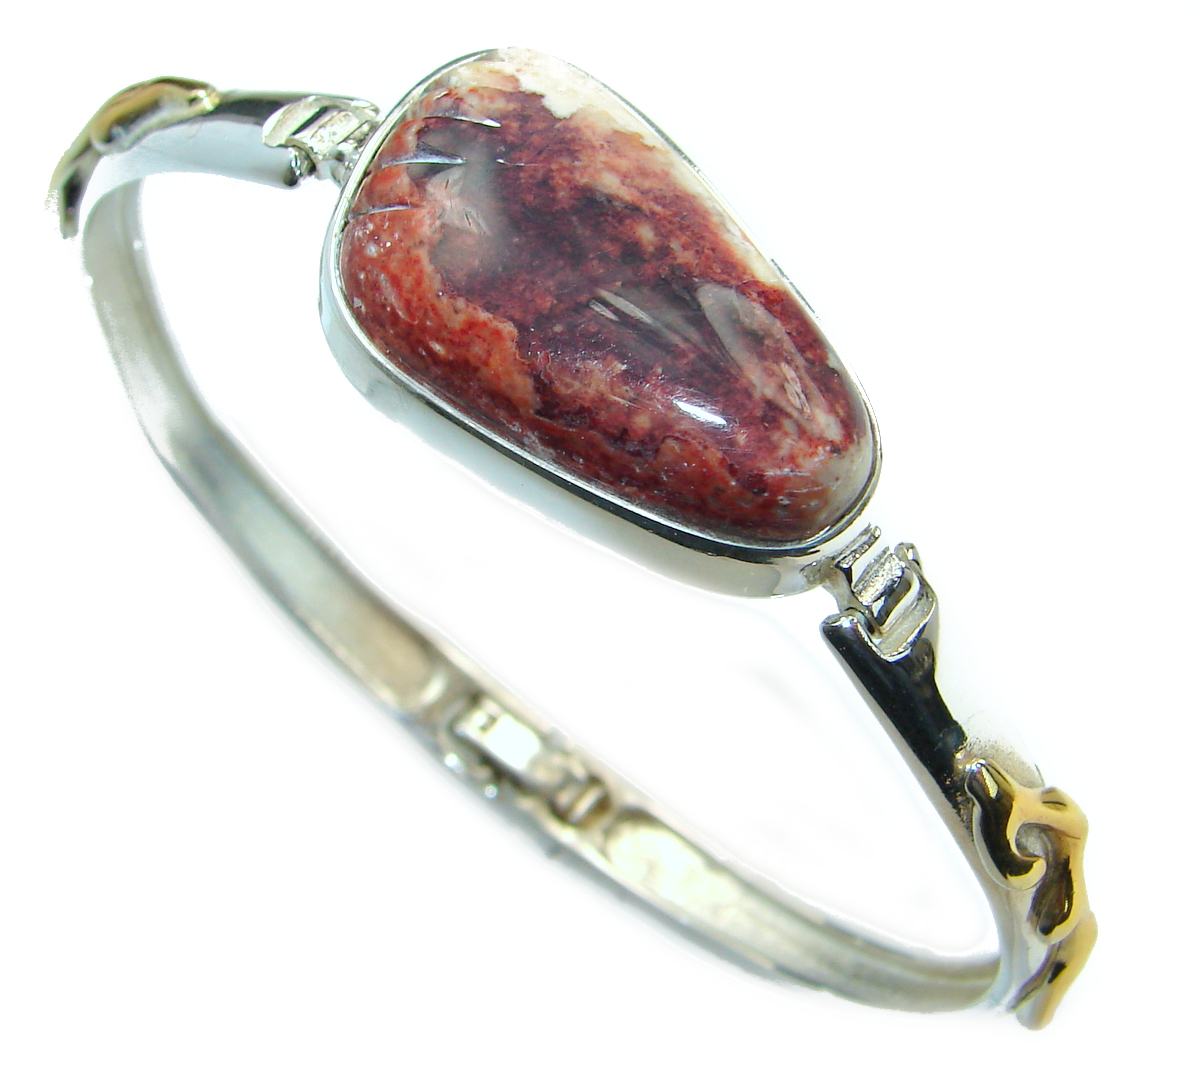 Handmade Artisan Sterling Silver 925 Bracelet with unique one of a kind Mexican Fire Opal,  15.80 grams of marvelous handcrafted jewelry design. Only one piece availble ready to ship! It's unique worldwide bracelet - simply piece of art in world of fine jewelry. Authentic Mexican Opal .925 Sterling Silver handcrafted Bracelet  BRACELET DETAILS: Weight: 15.80g; Material: Sterling Silver; Main stone: Mexican Fire Opal; Other stones: ; Width (widest section): L - 3/4, w - 1 1/4, T - 1/4 inch; Inner circumference: 6-8 inch; Clasp: hidden; Stamp / Mark: 925; Condition: New; Main color: orange; Shape: abstract; Collection: In to The Woods;  Item Code: 31-sie-18-112